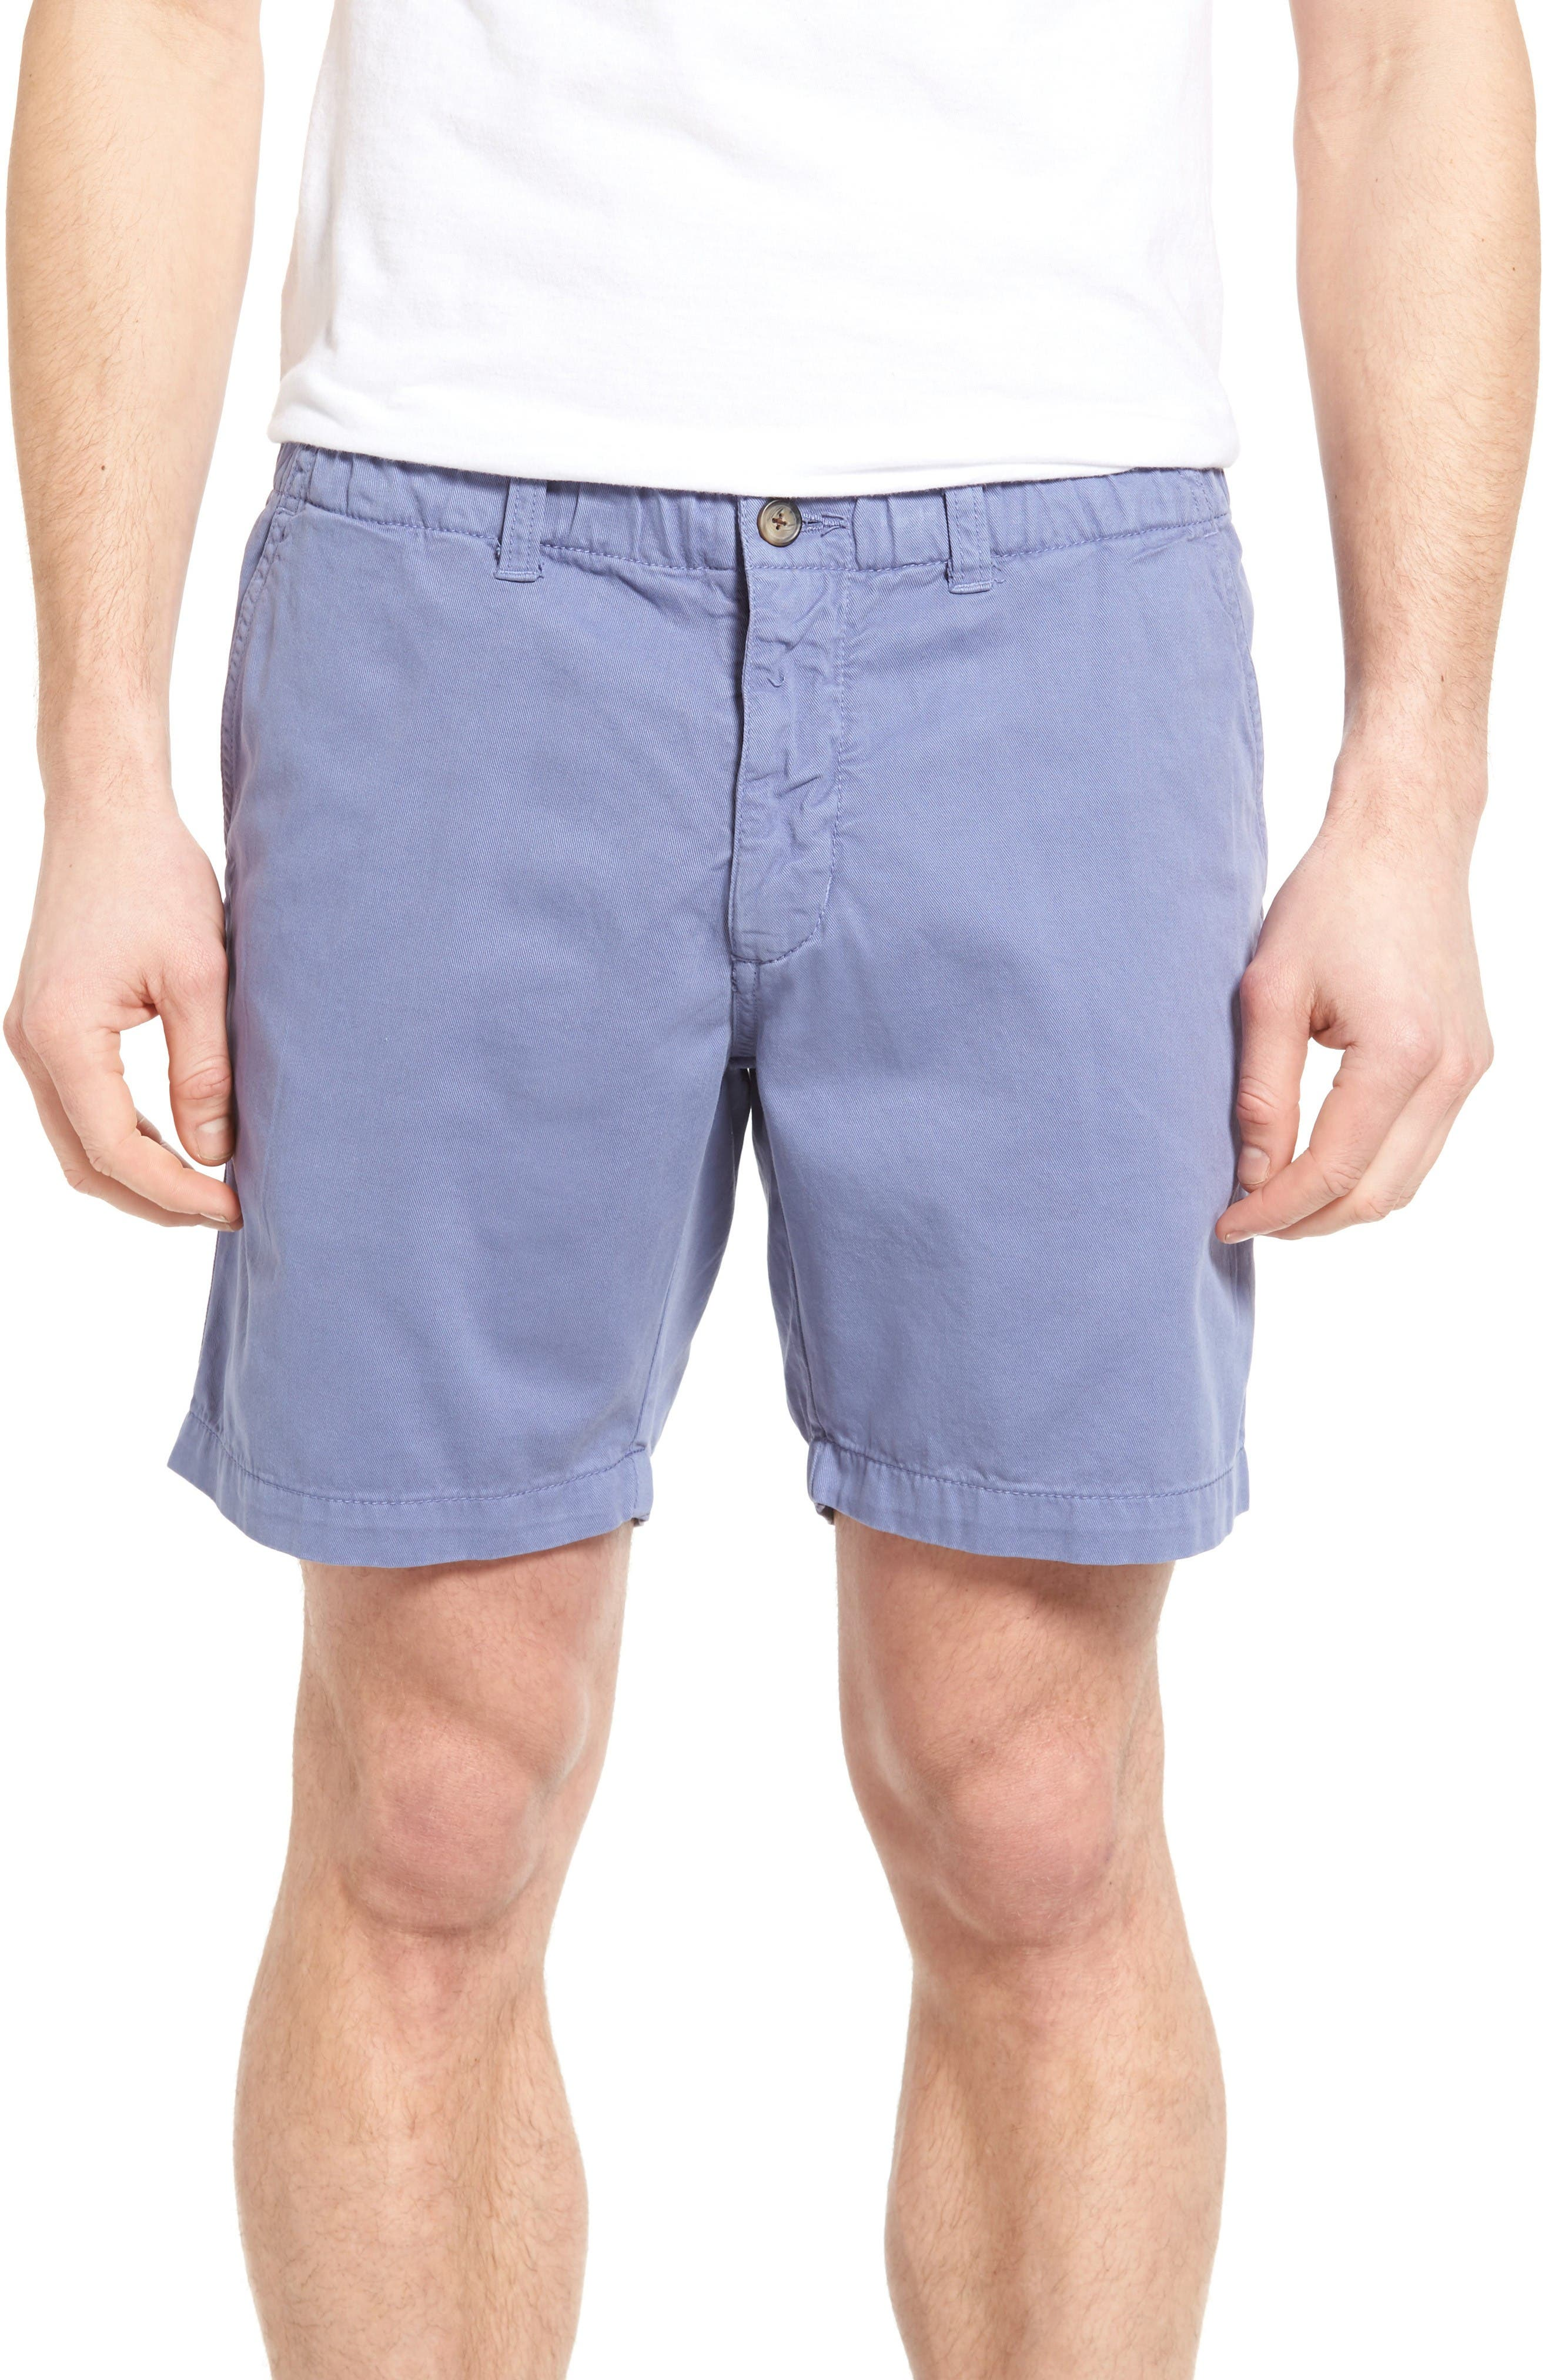 Vintage 1946 Washed Shorts